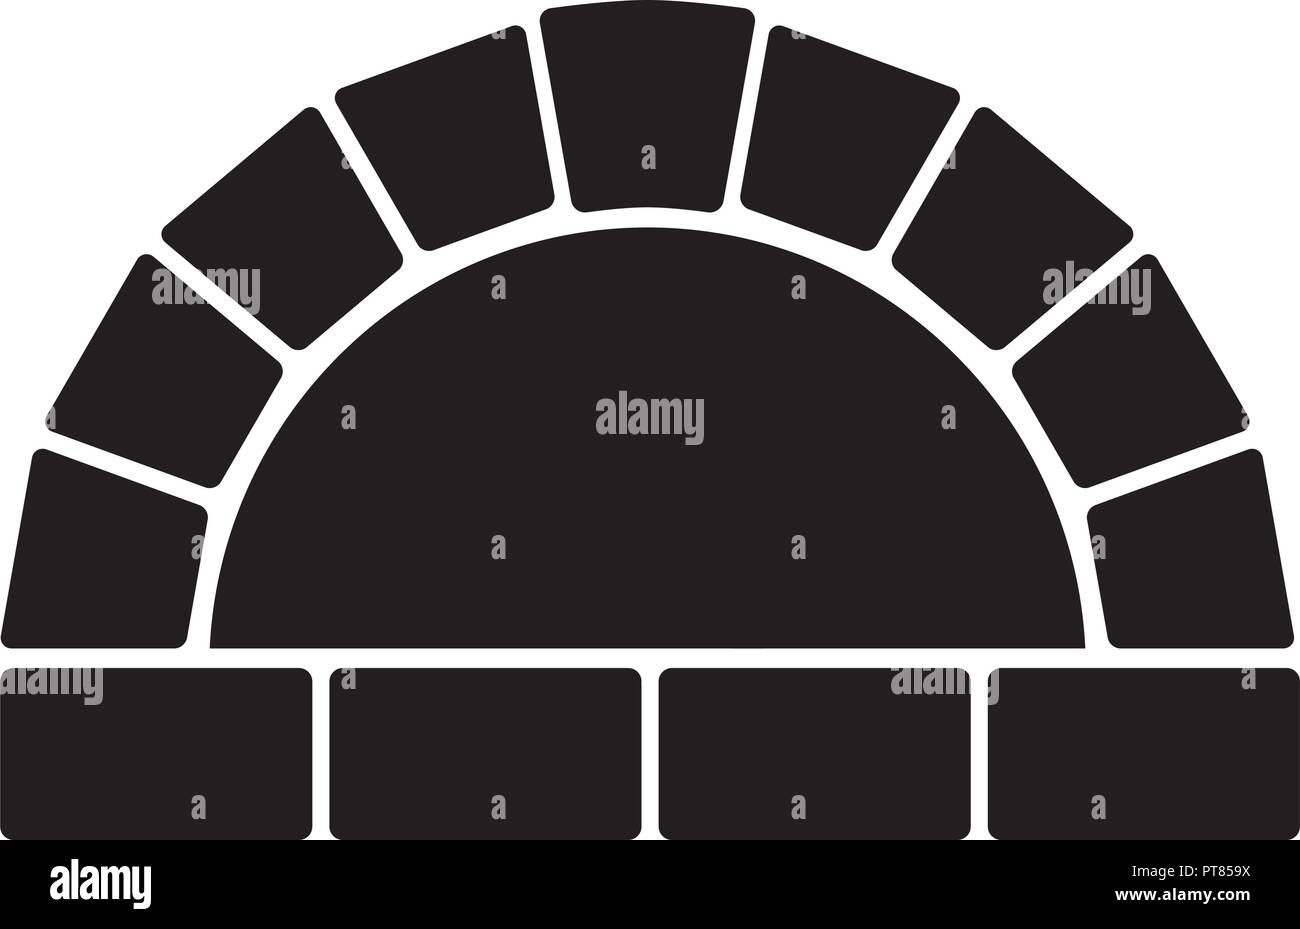 vector black and white illustration of oven with no fire. stone oven graphic design - Stock Vector